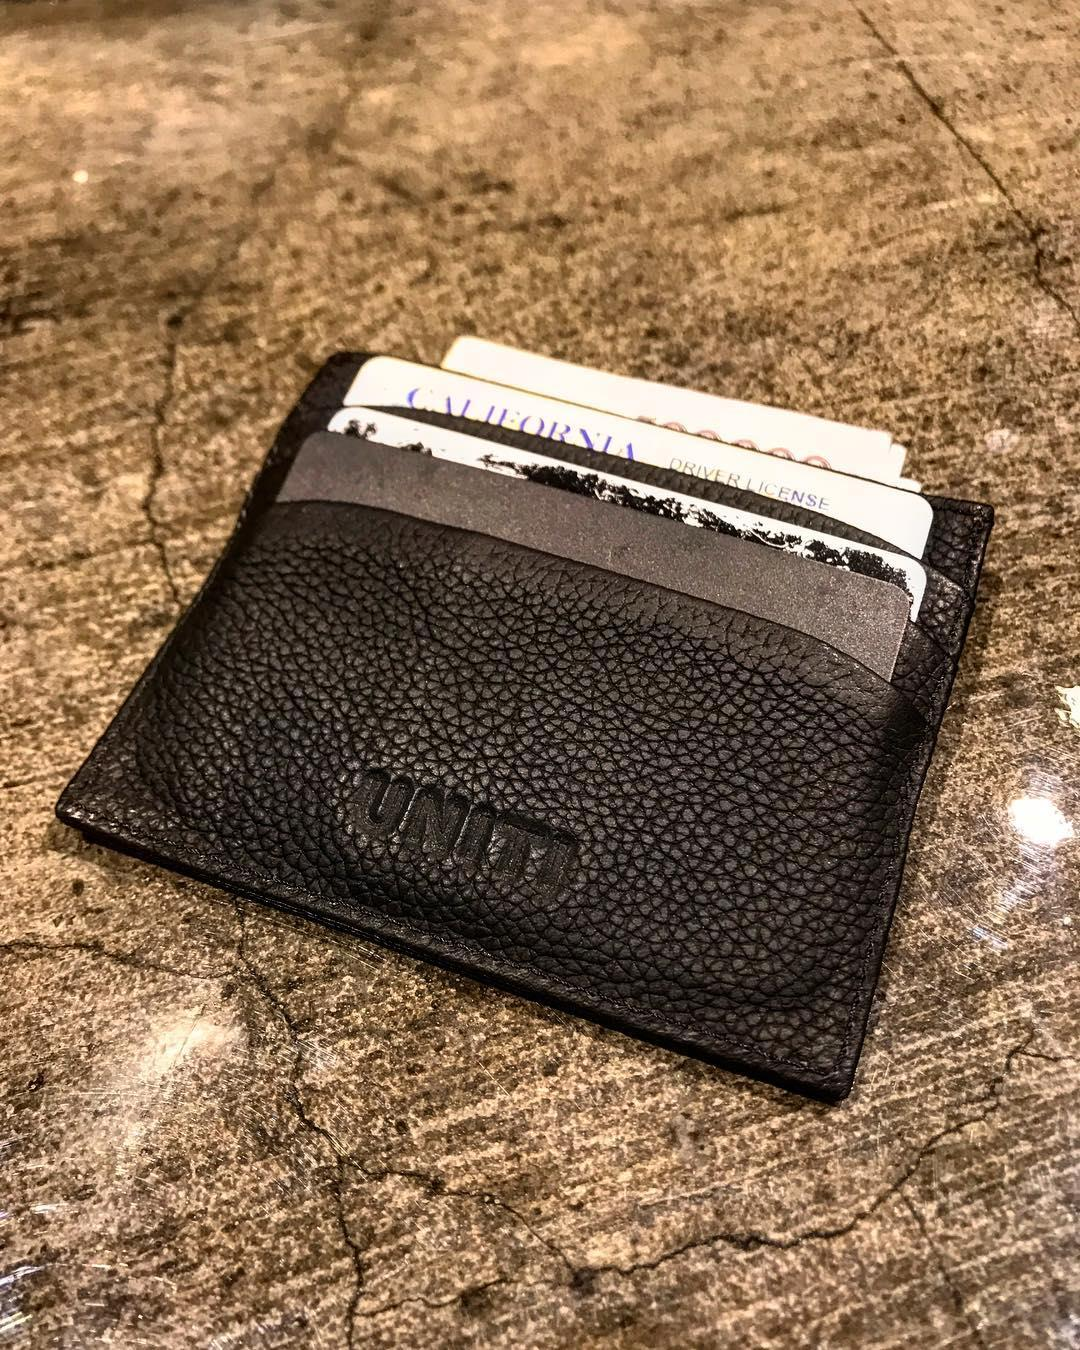 New leather card 💳 holder ⚫️